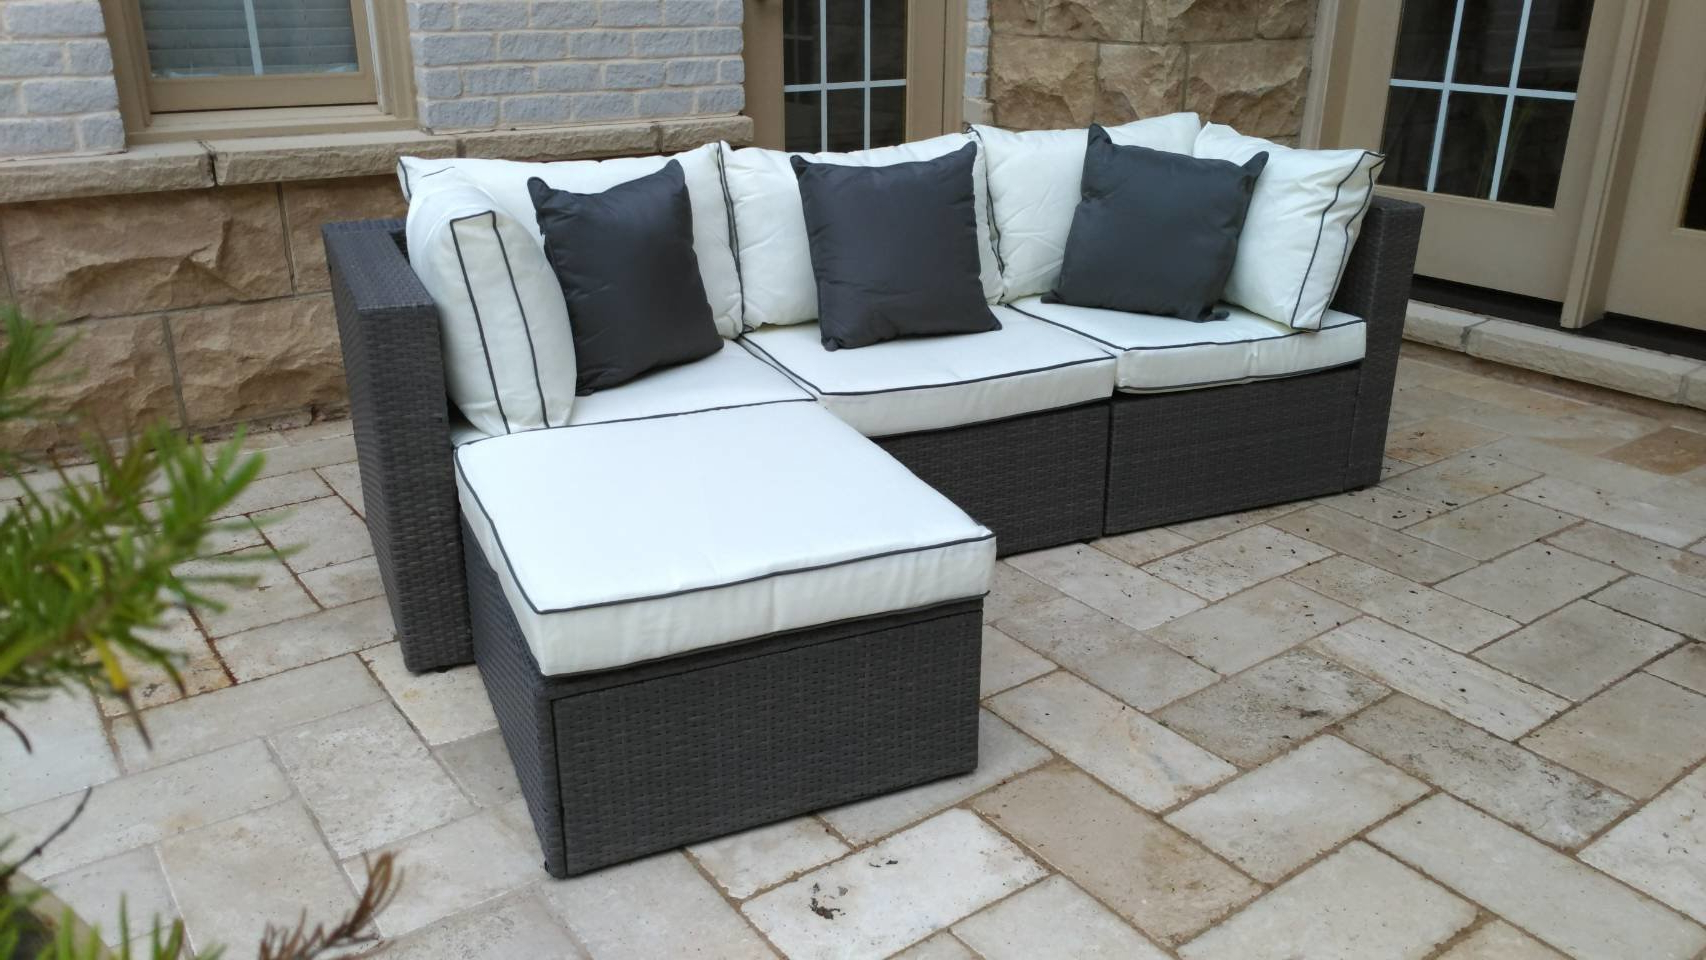 Lorentzen Patio Sectionals With Cushions Intended For 2019 Burruss Patio Sectional With Cushions (View 8 of 20)